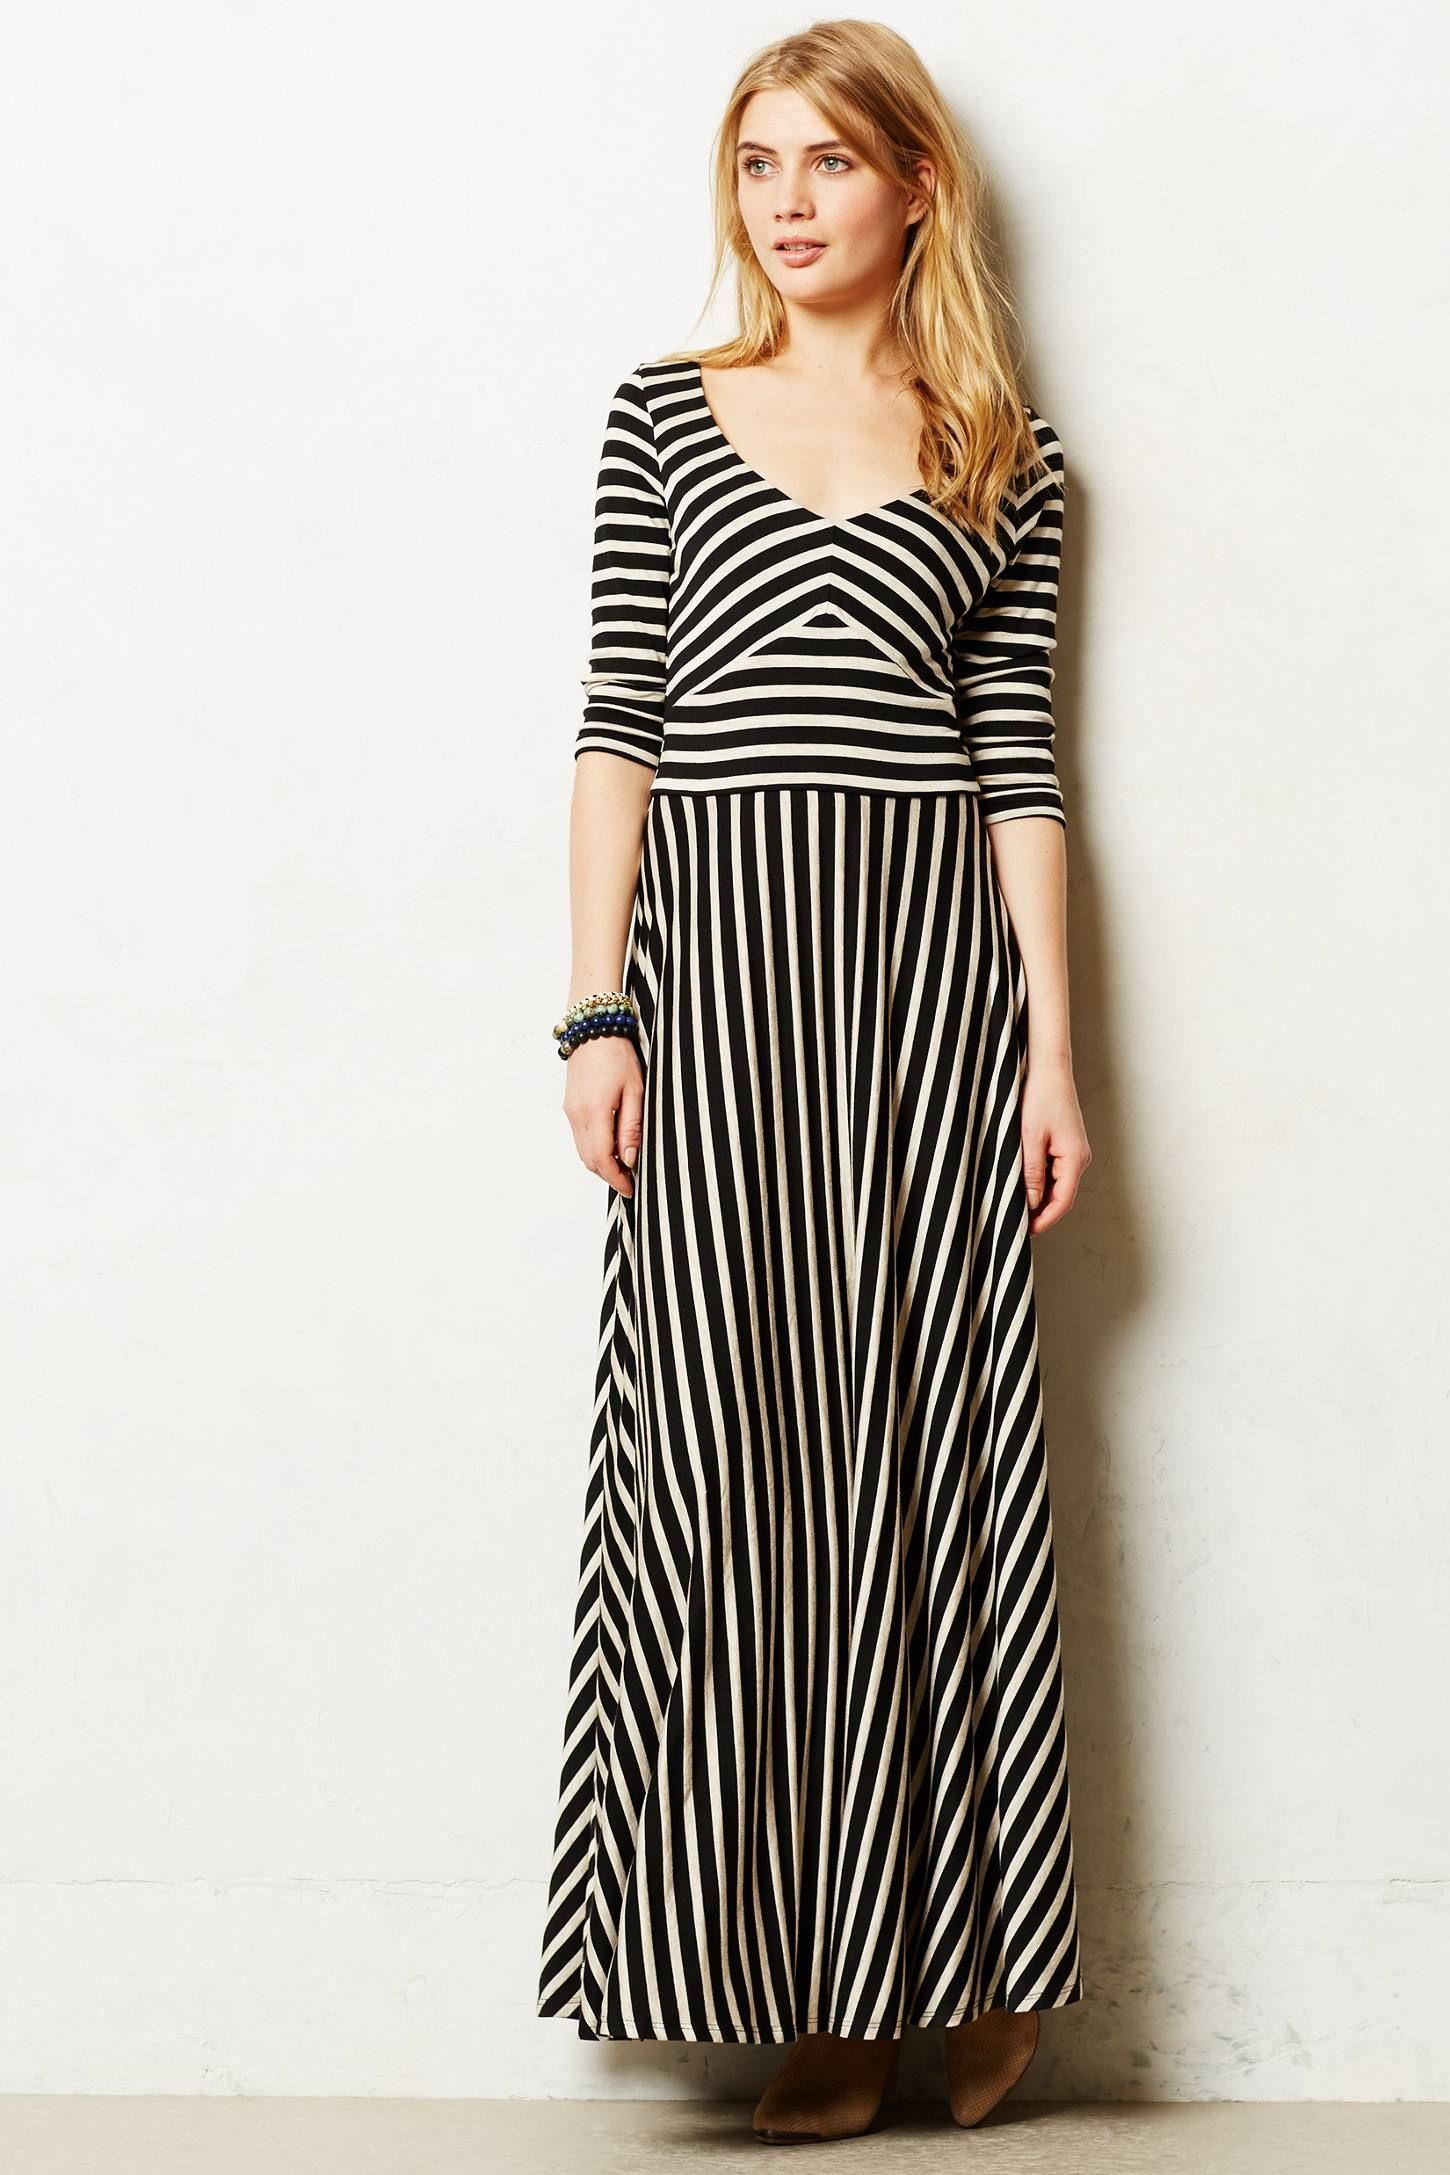 Demarcation maxi dress anthropologie homeless librarian from